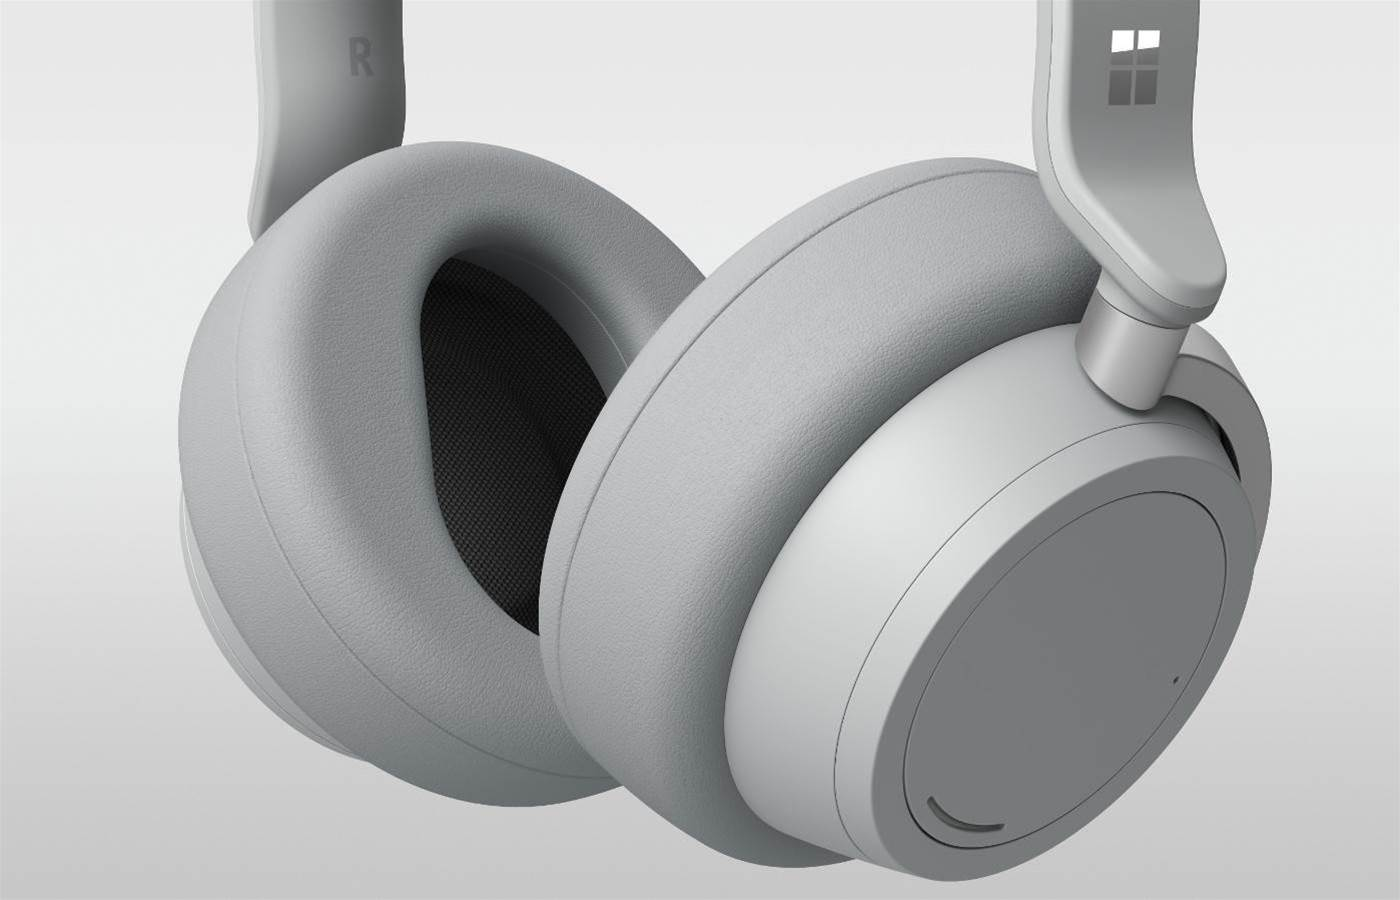 Microsoft's Surface Headphones are pretty exy